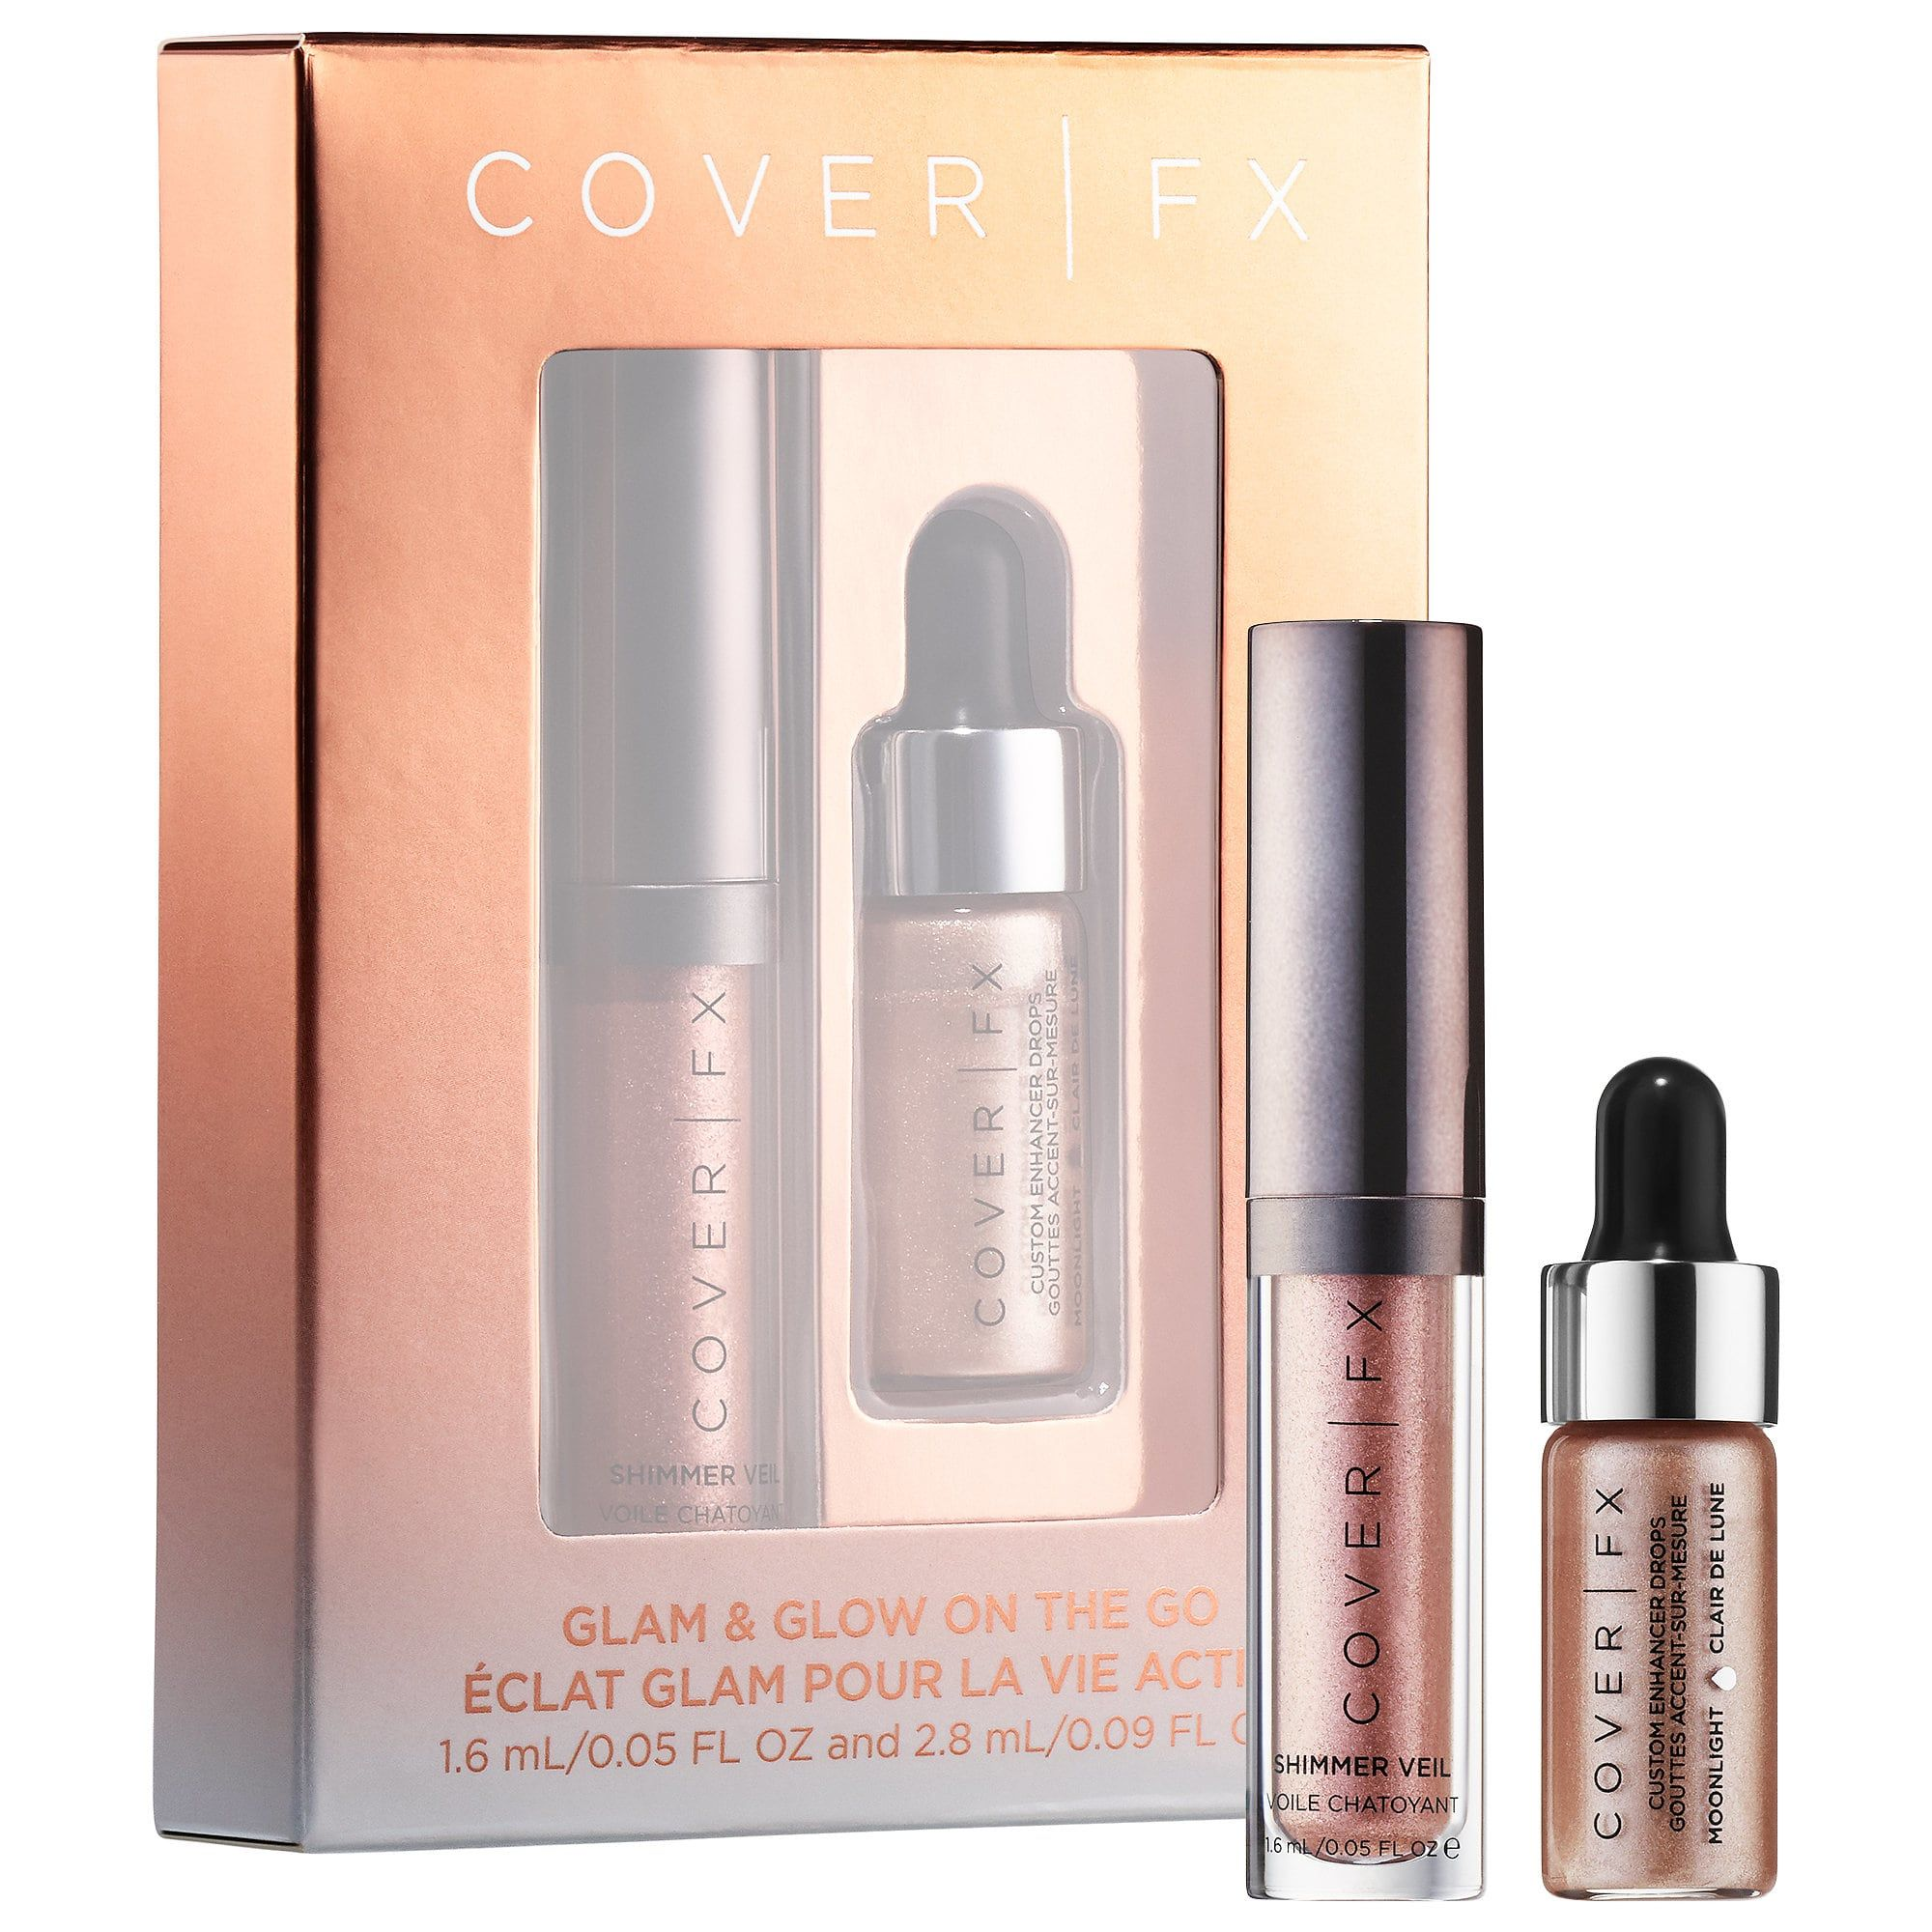 COVER FX Glam & Glow On The Go Minis Set Makeup gift